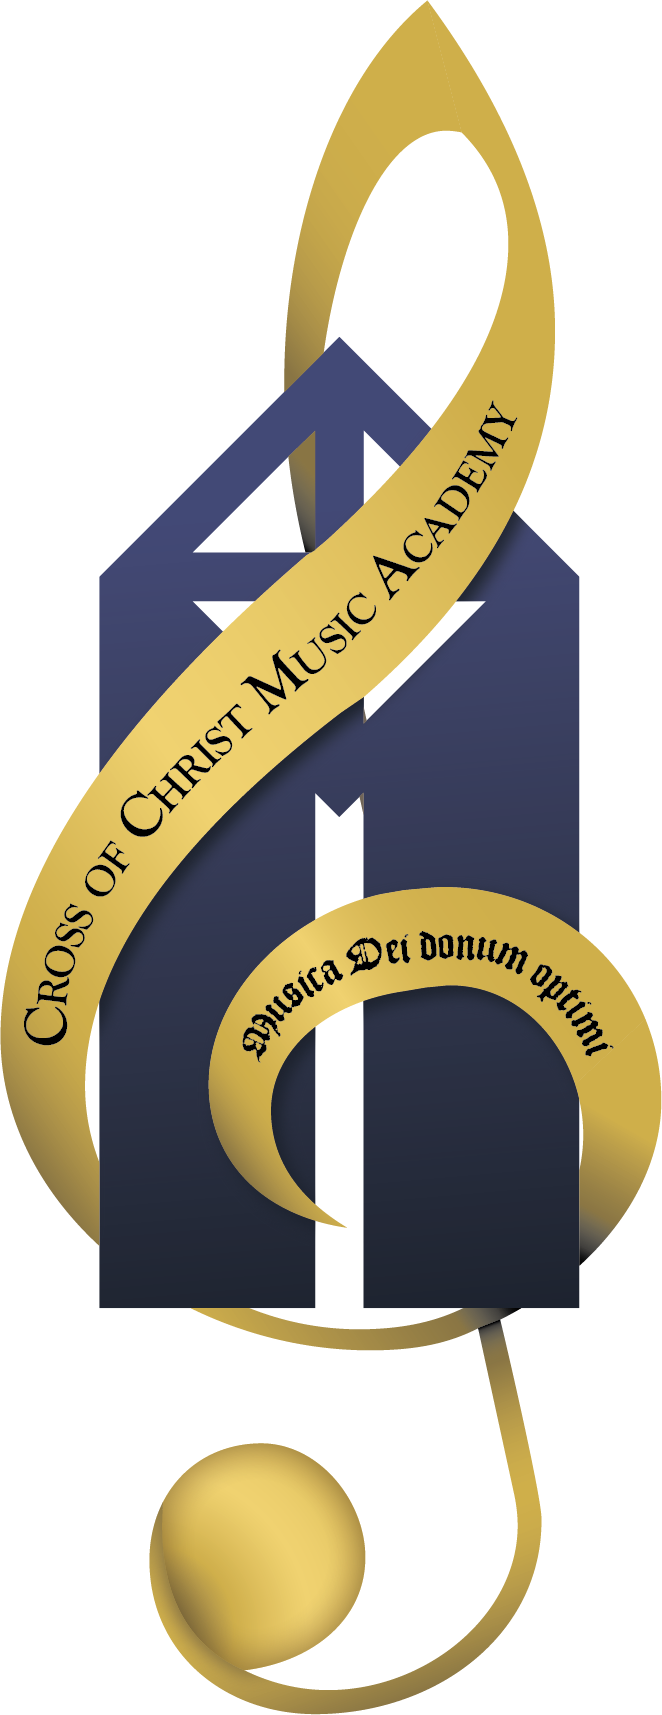 Welcome cross of christ. Orchestra clipart band church